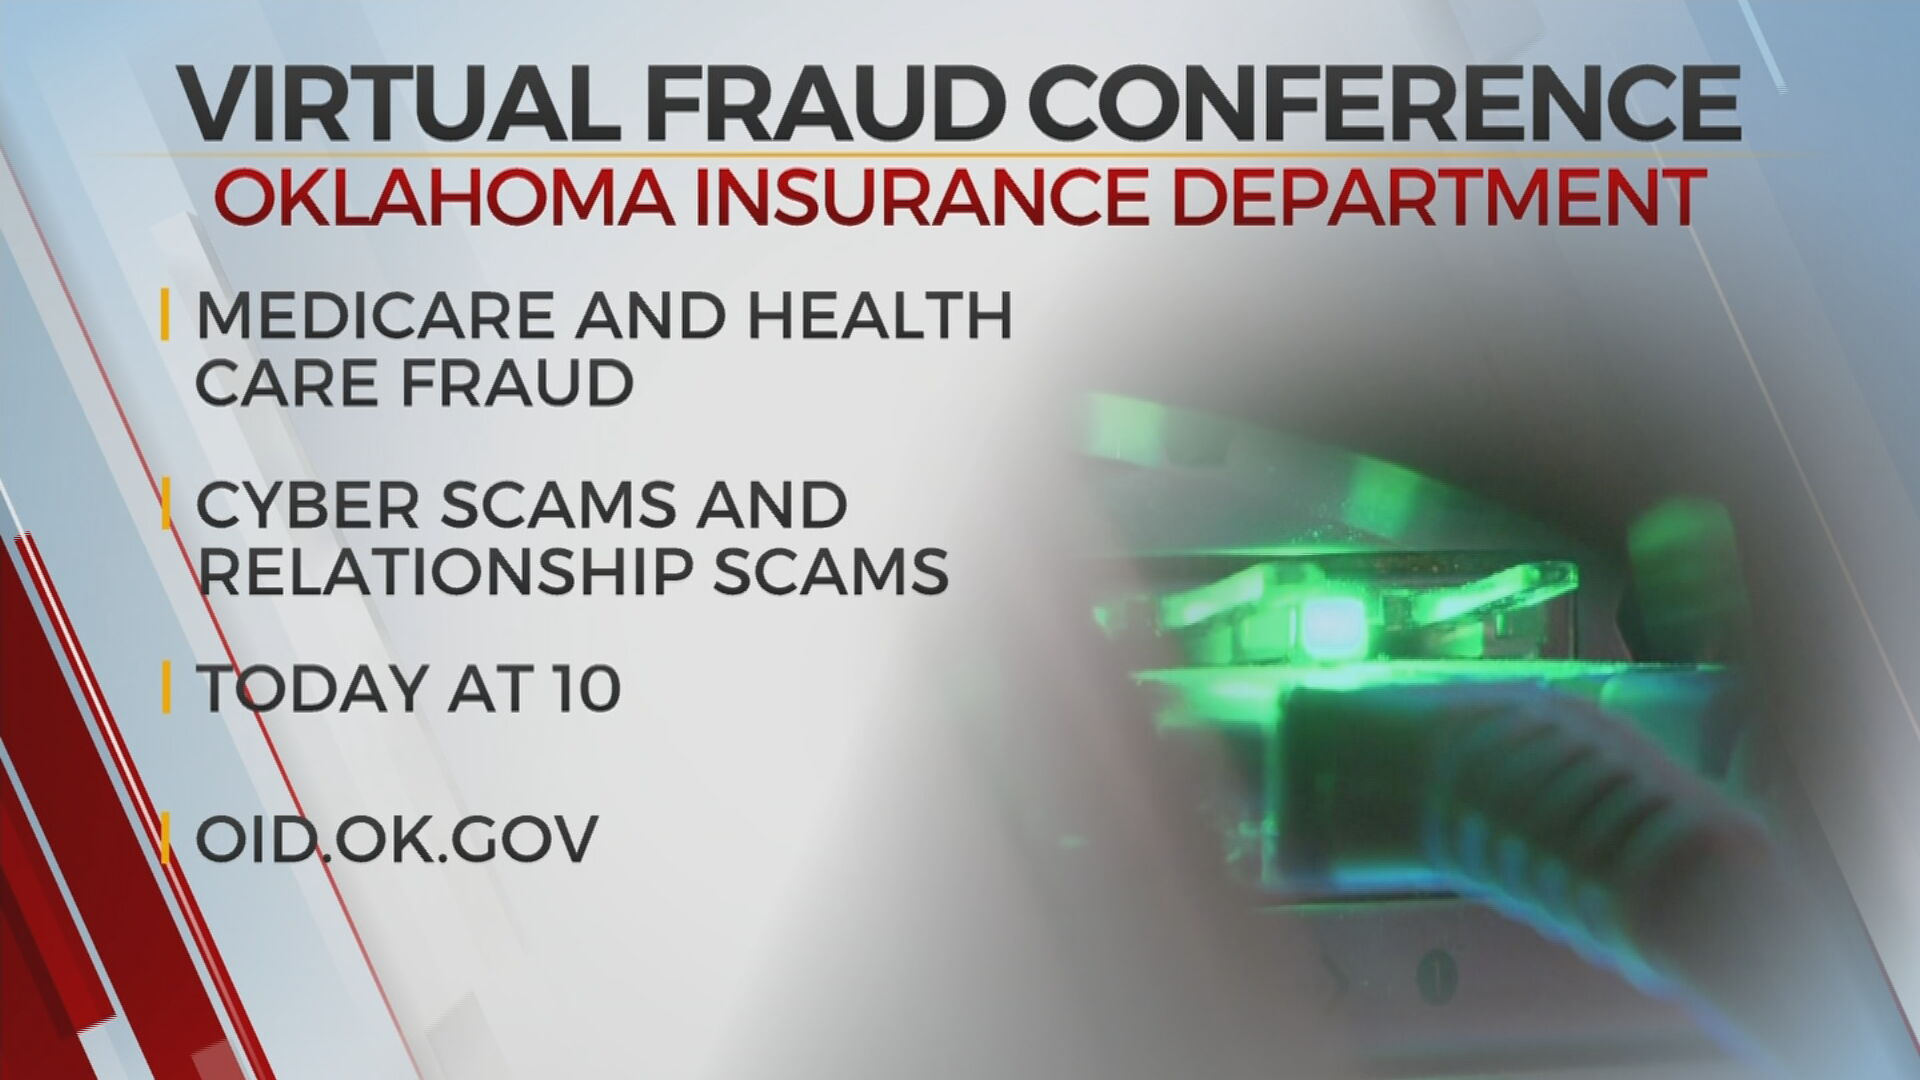 Oklahoma Insurance Department, Attorney General's Office Hold Virtual Fraud Conference